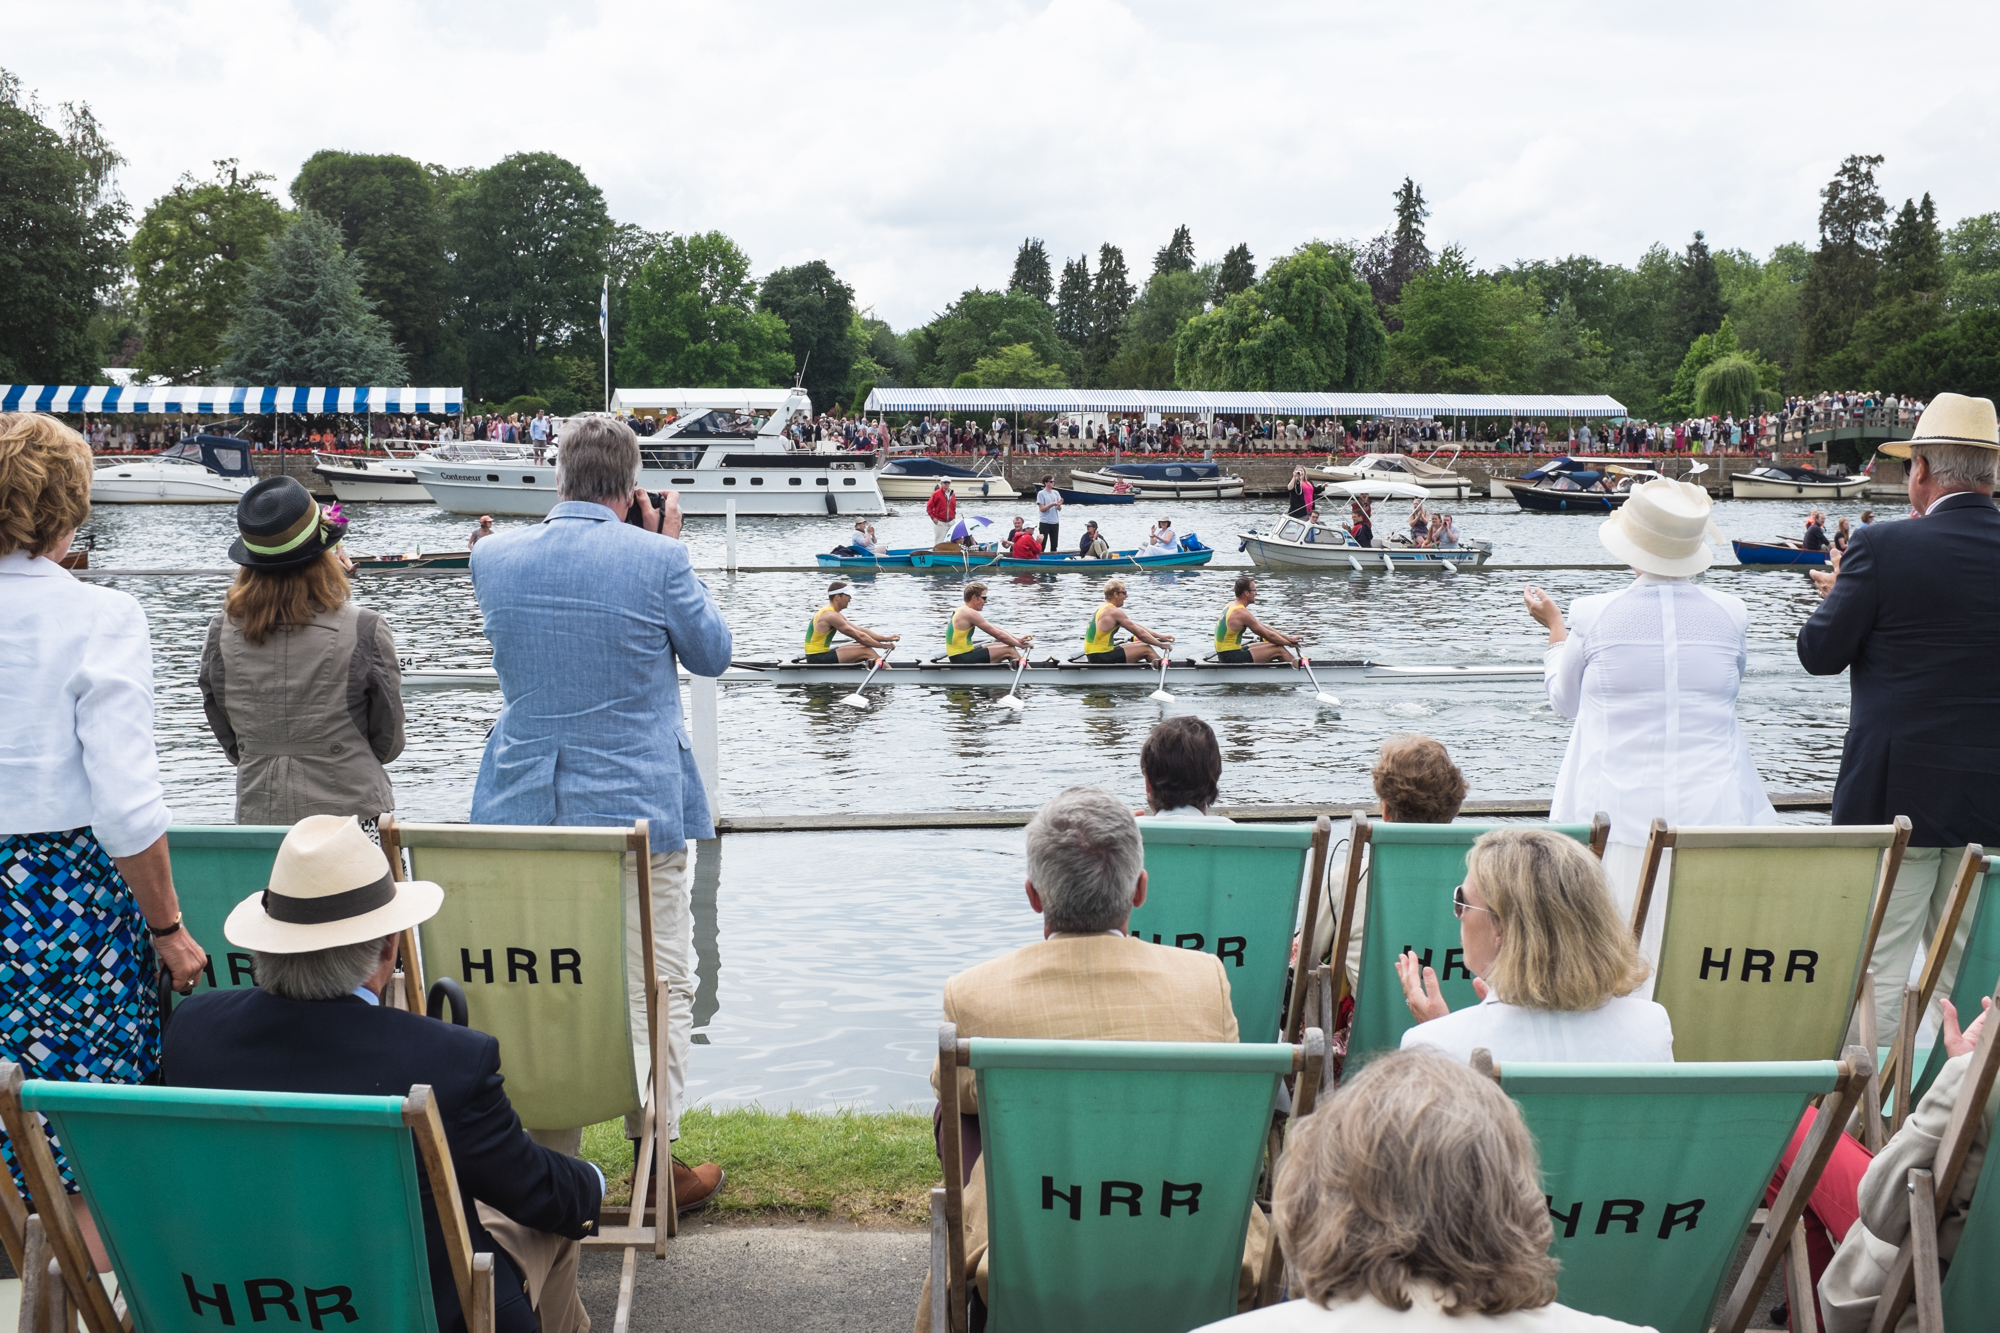 Spectators at Henley Royal Regatta applaud an Australian coxless four as it approachs the finish line.